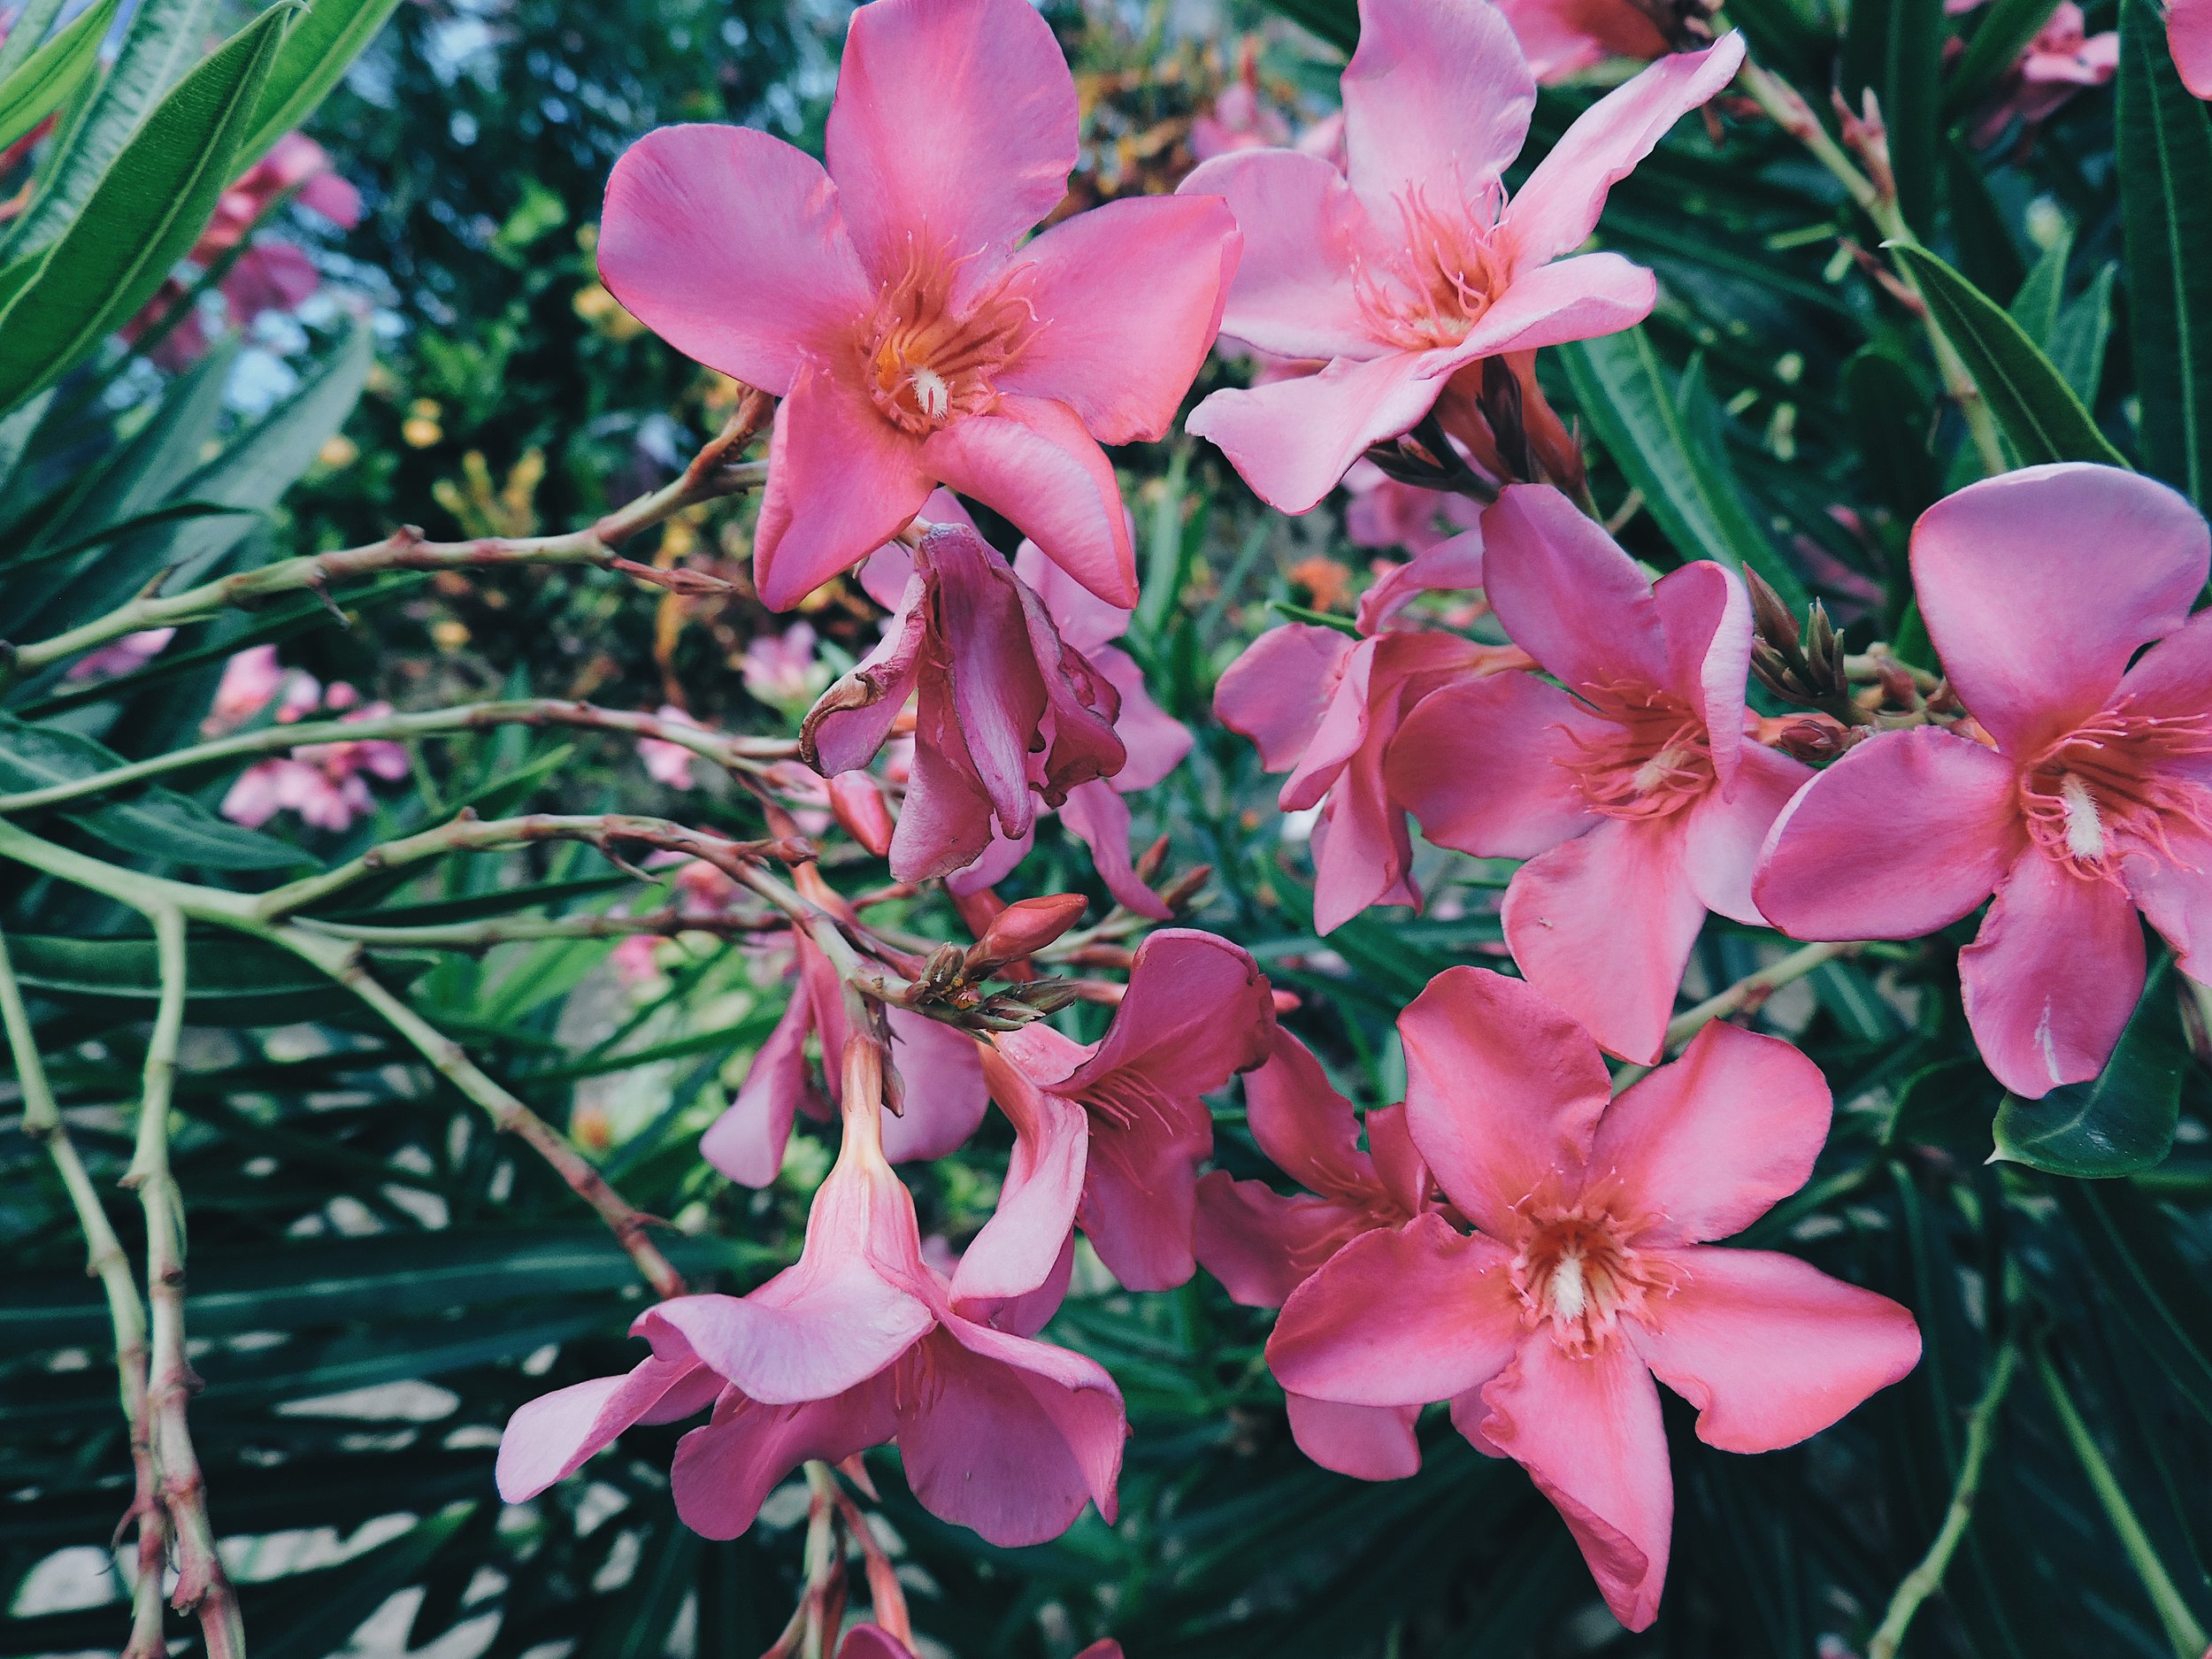 pinkflowerscancuntropical